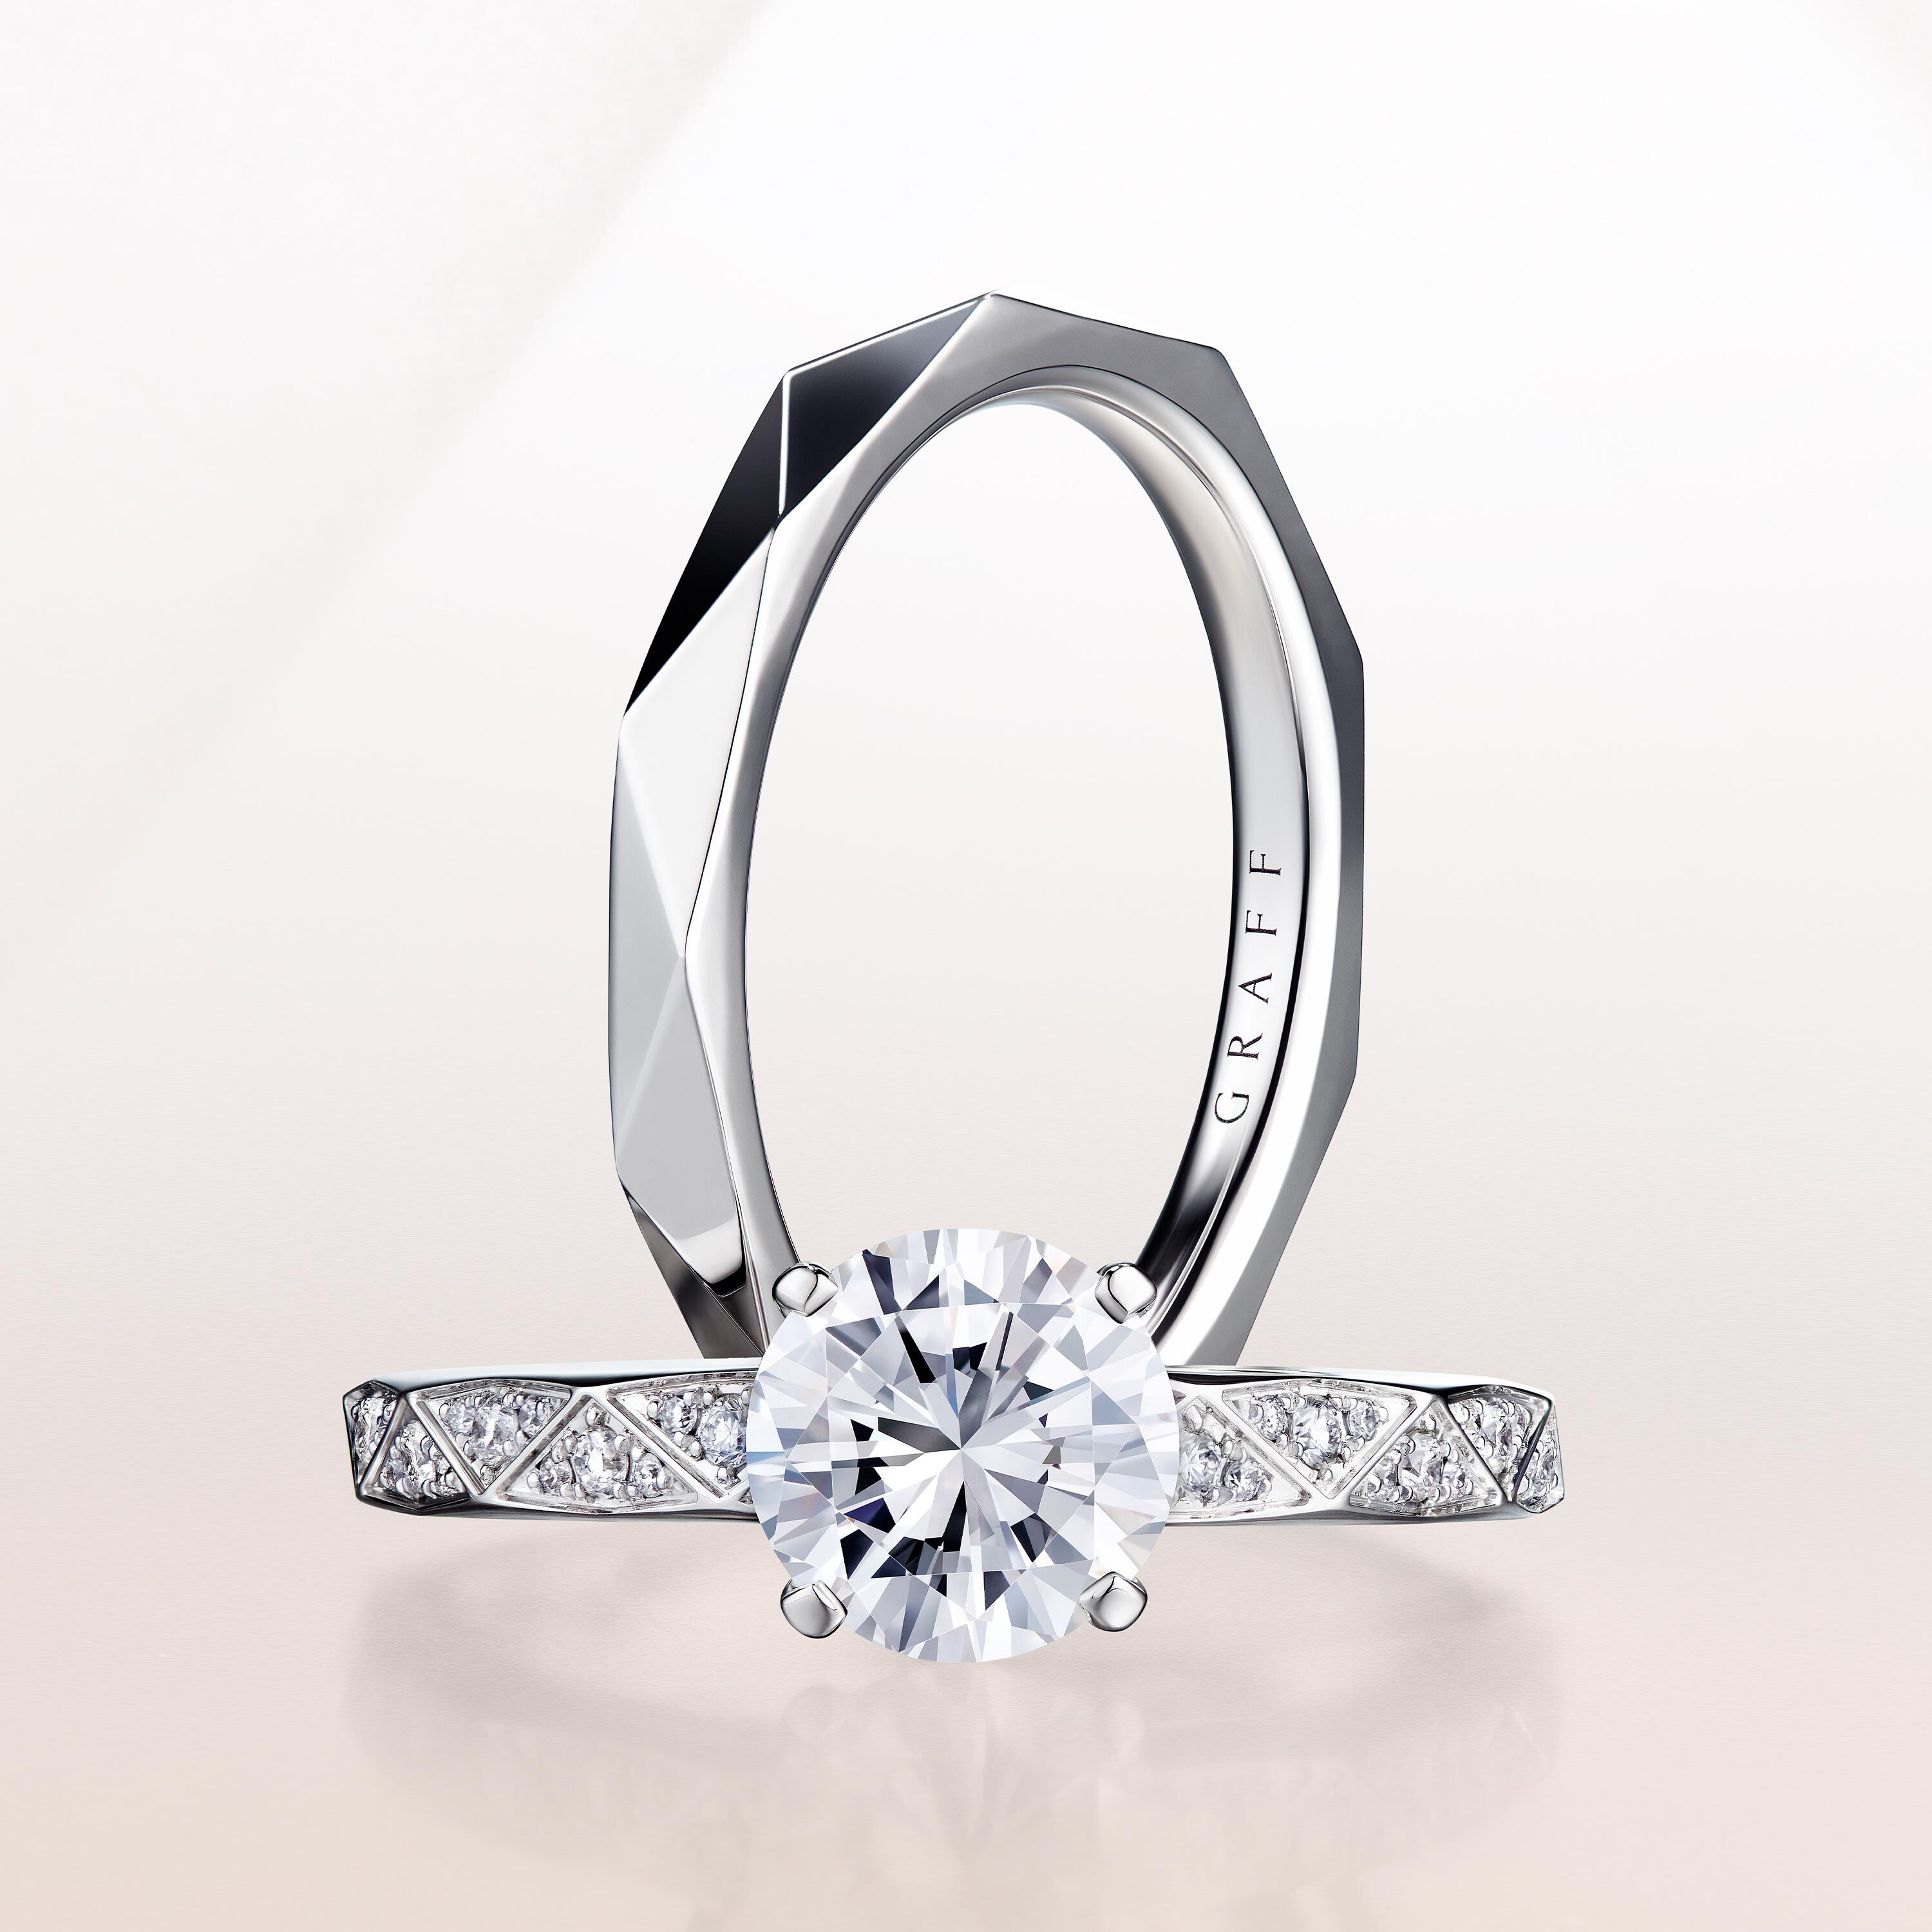 A Laurence Graff Signature wedding band and a diamond engagement ring